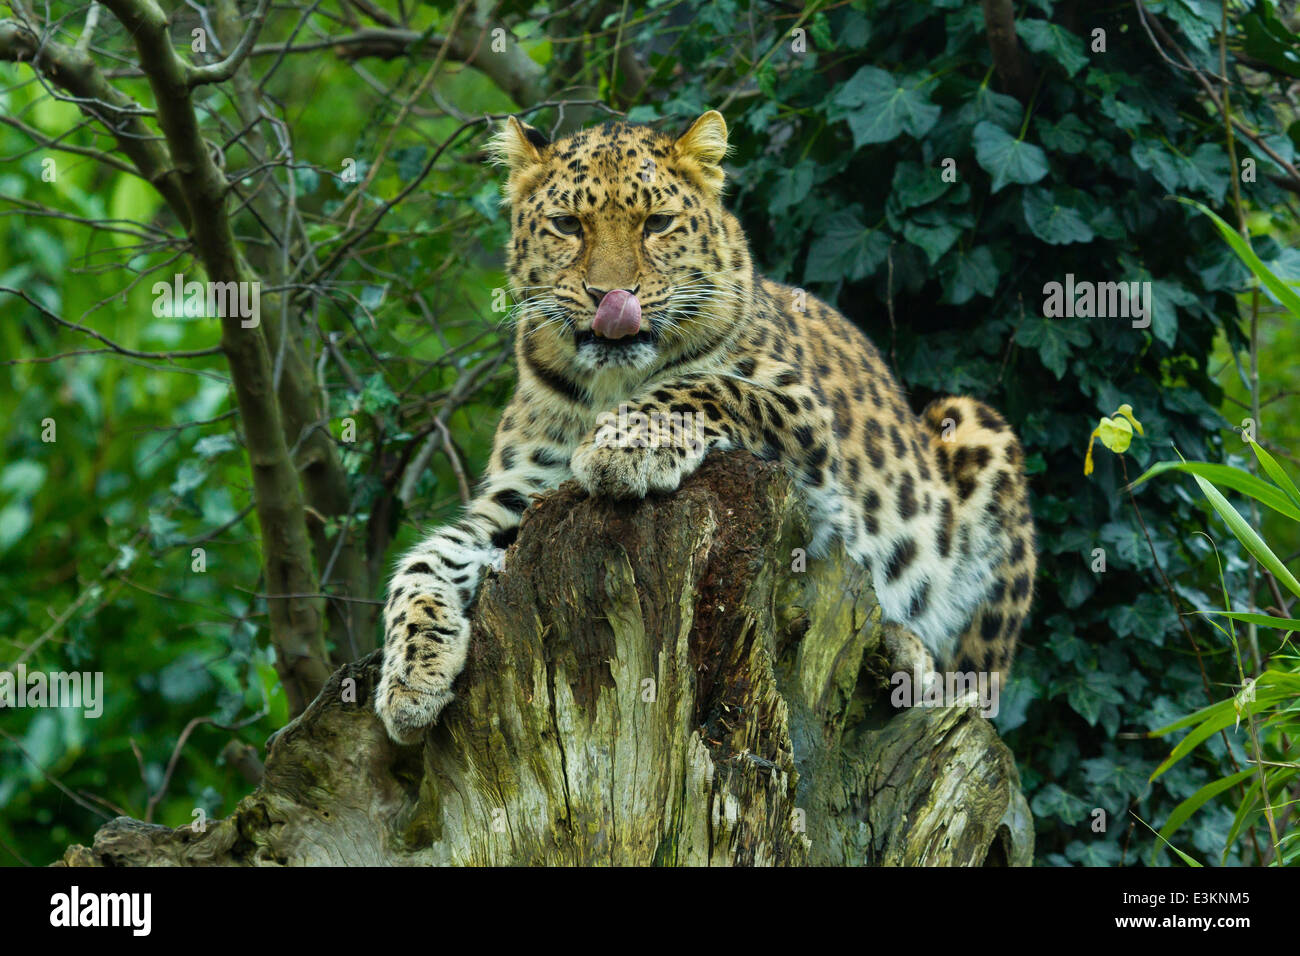 Extremely Rare Amur Leopard  (Panthera Pardus Orientalis) On Tree Stump Licking Its Face - Stock Image